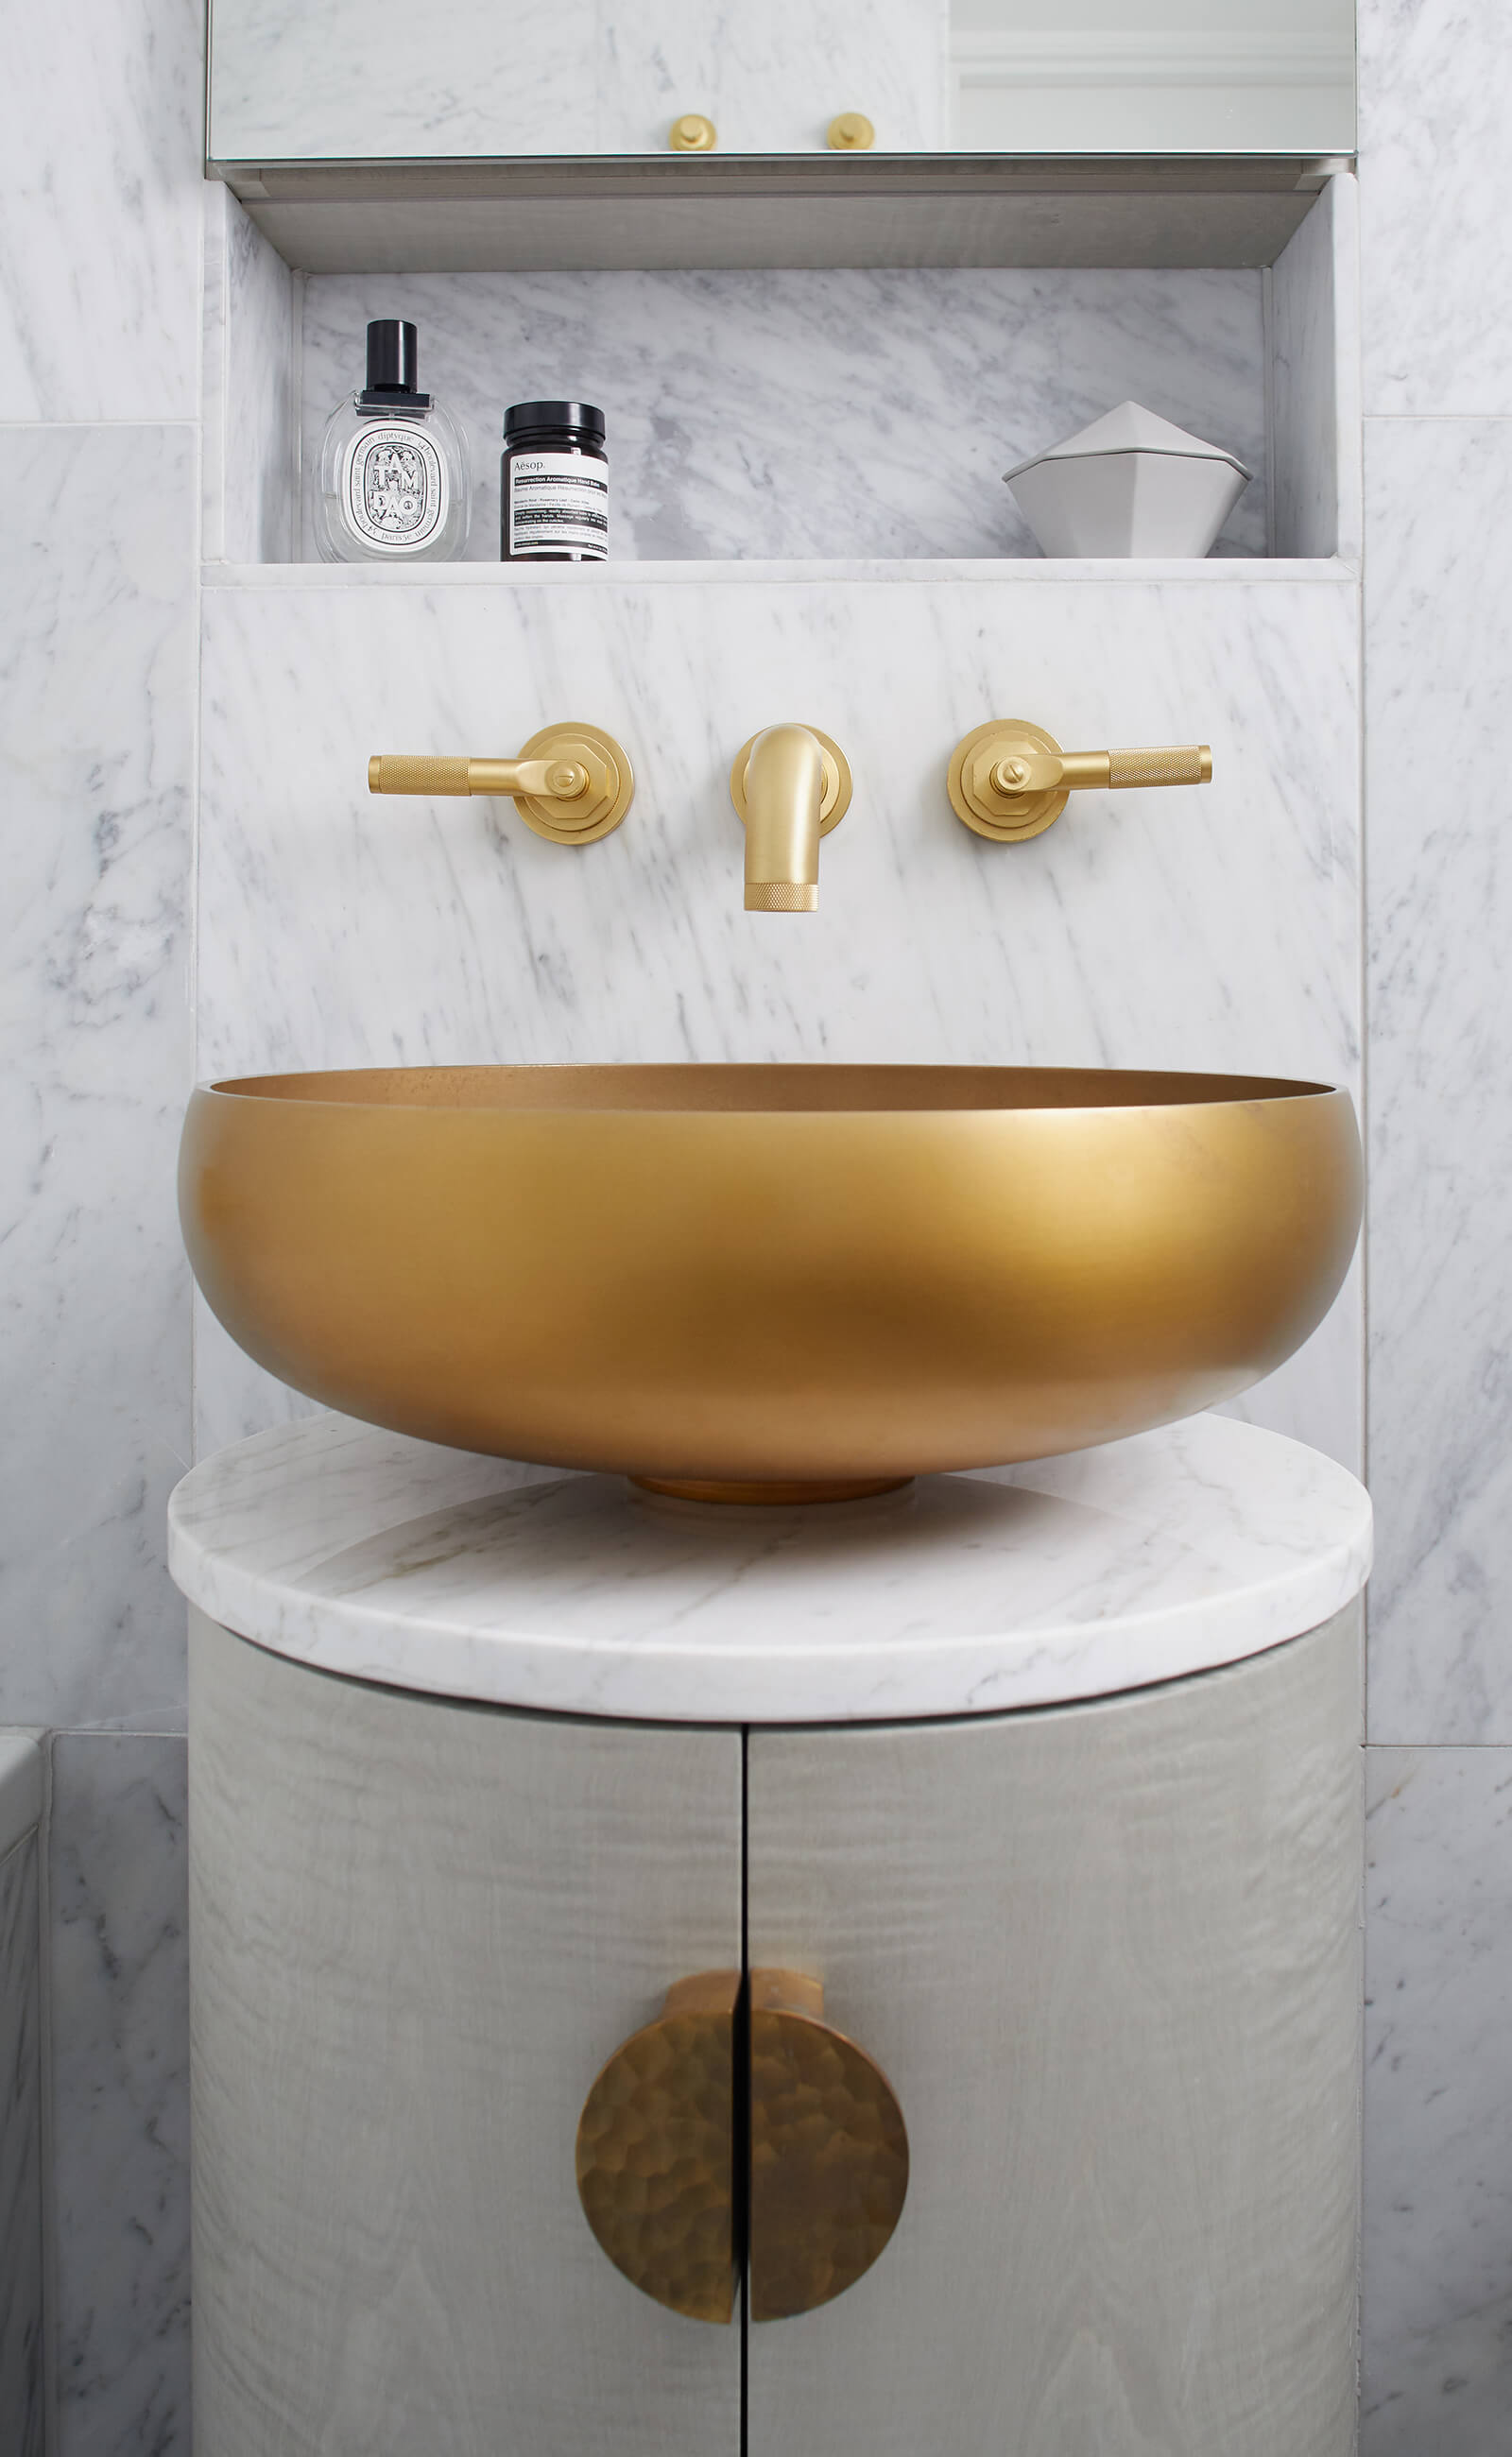 Round brass basin on grey bathroom cabinet with carrara marble walls